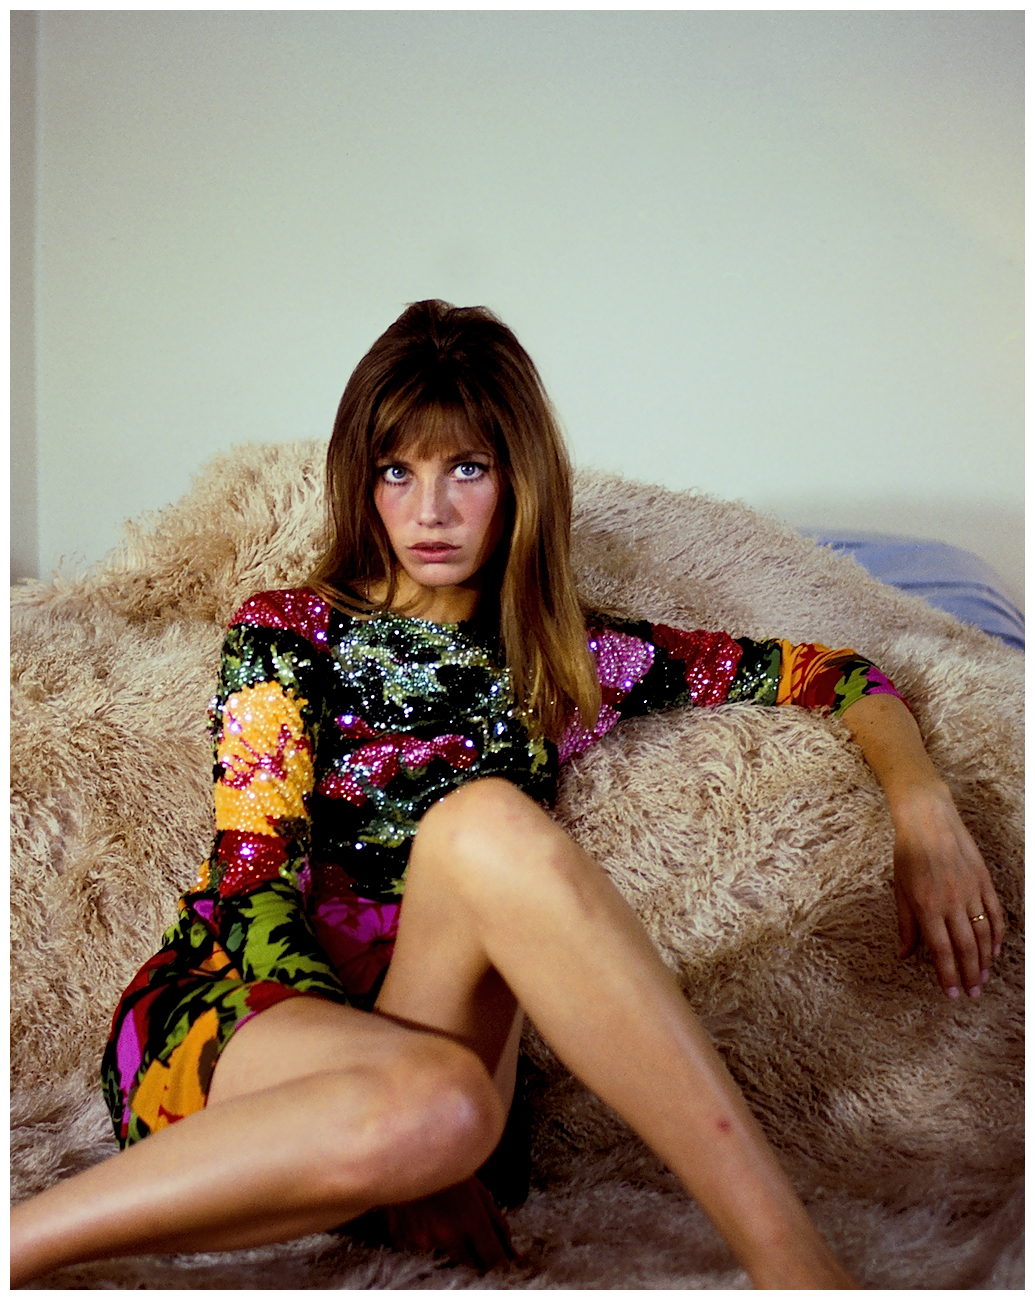 Jane birkin picture - Check Out Her Incredible Style For Some Audrey Style Inspiration